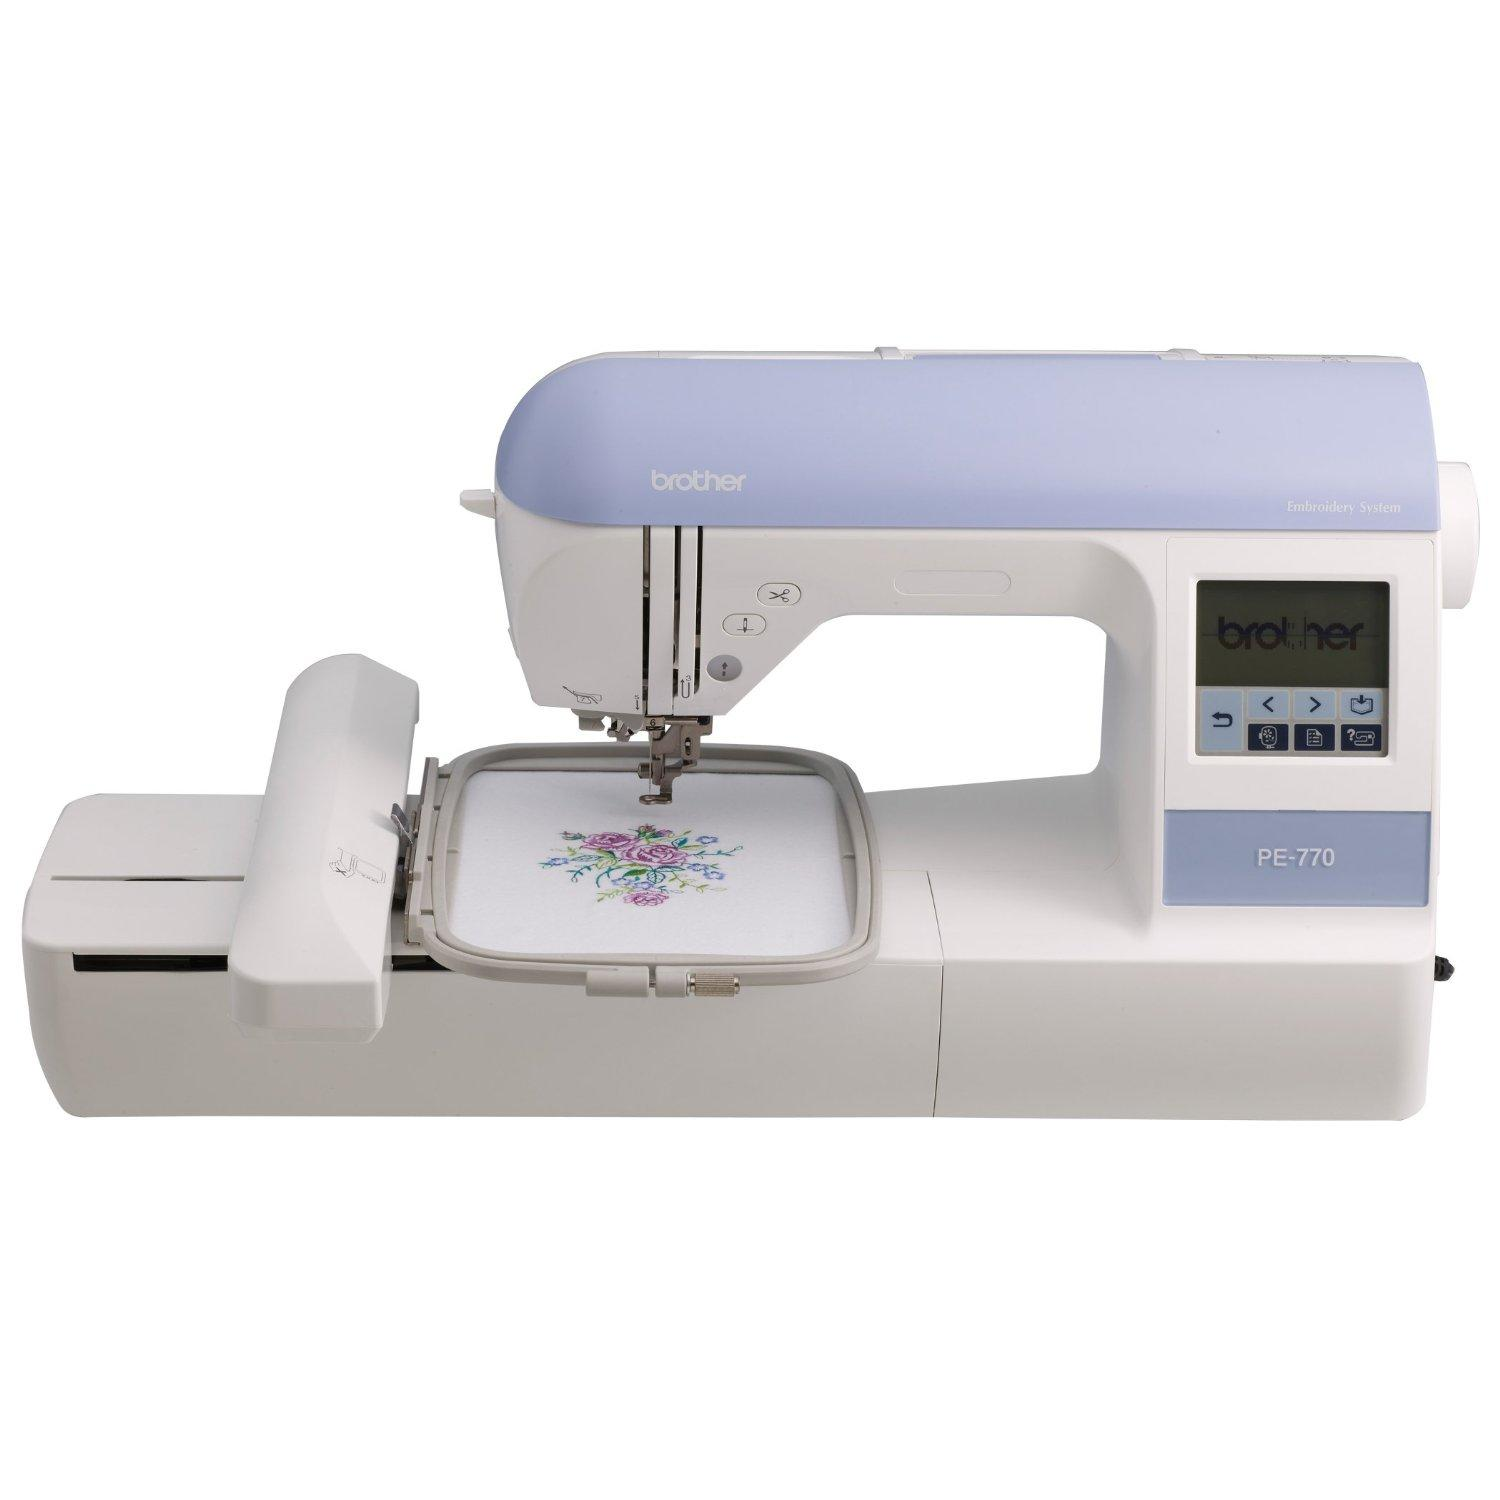 PE-770 embroidery machine